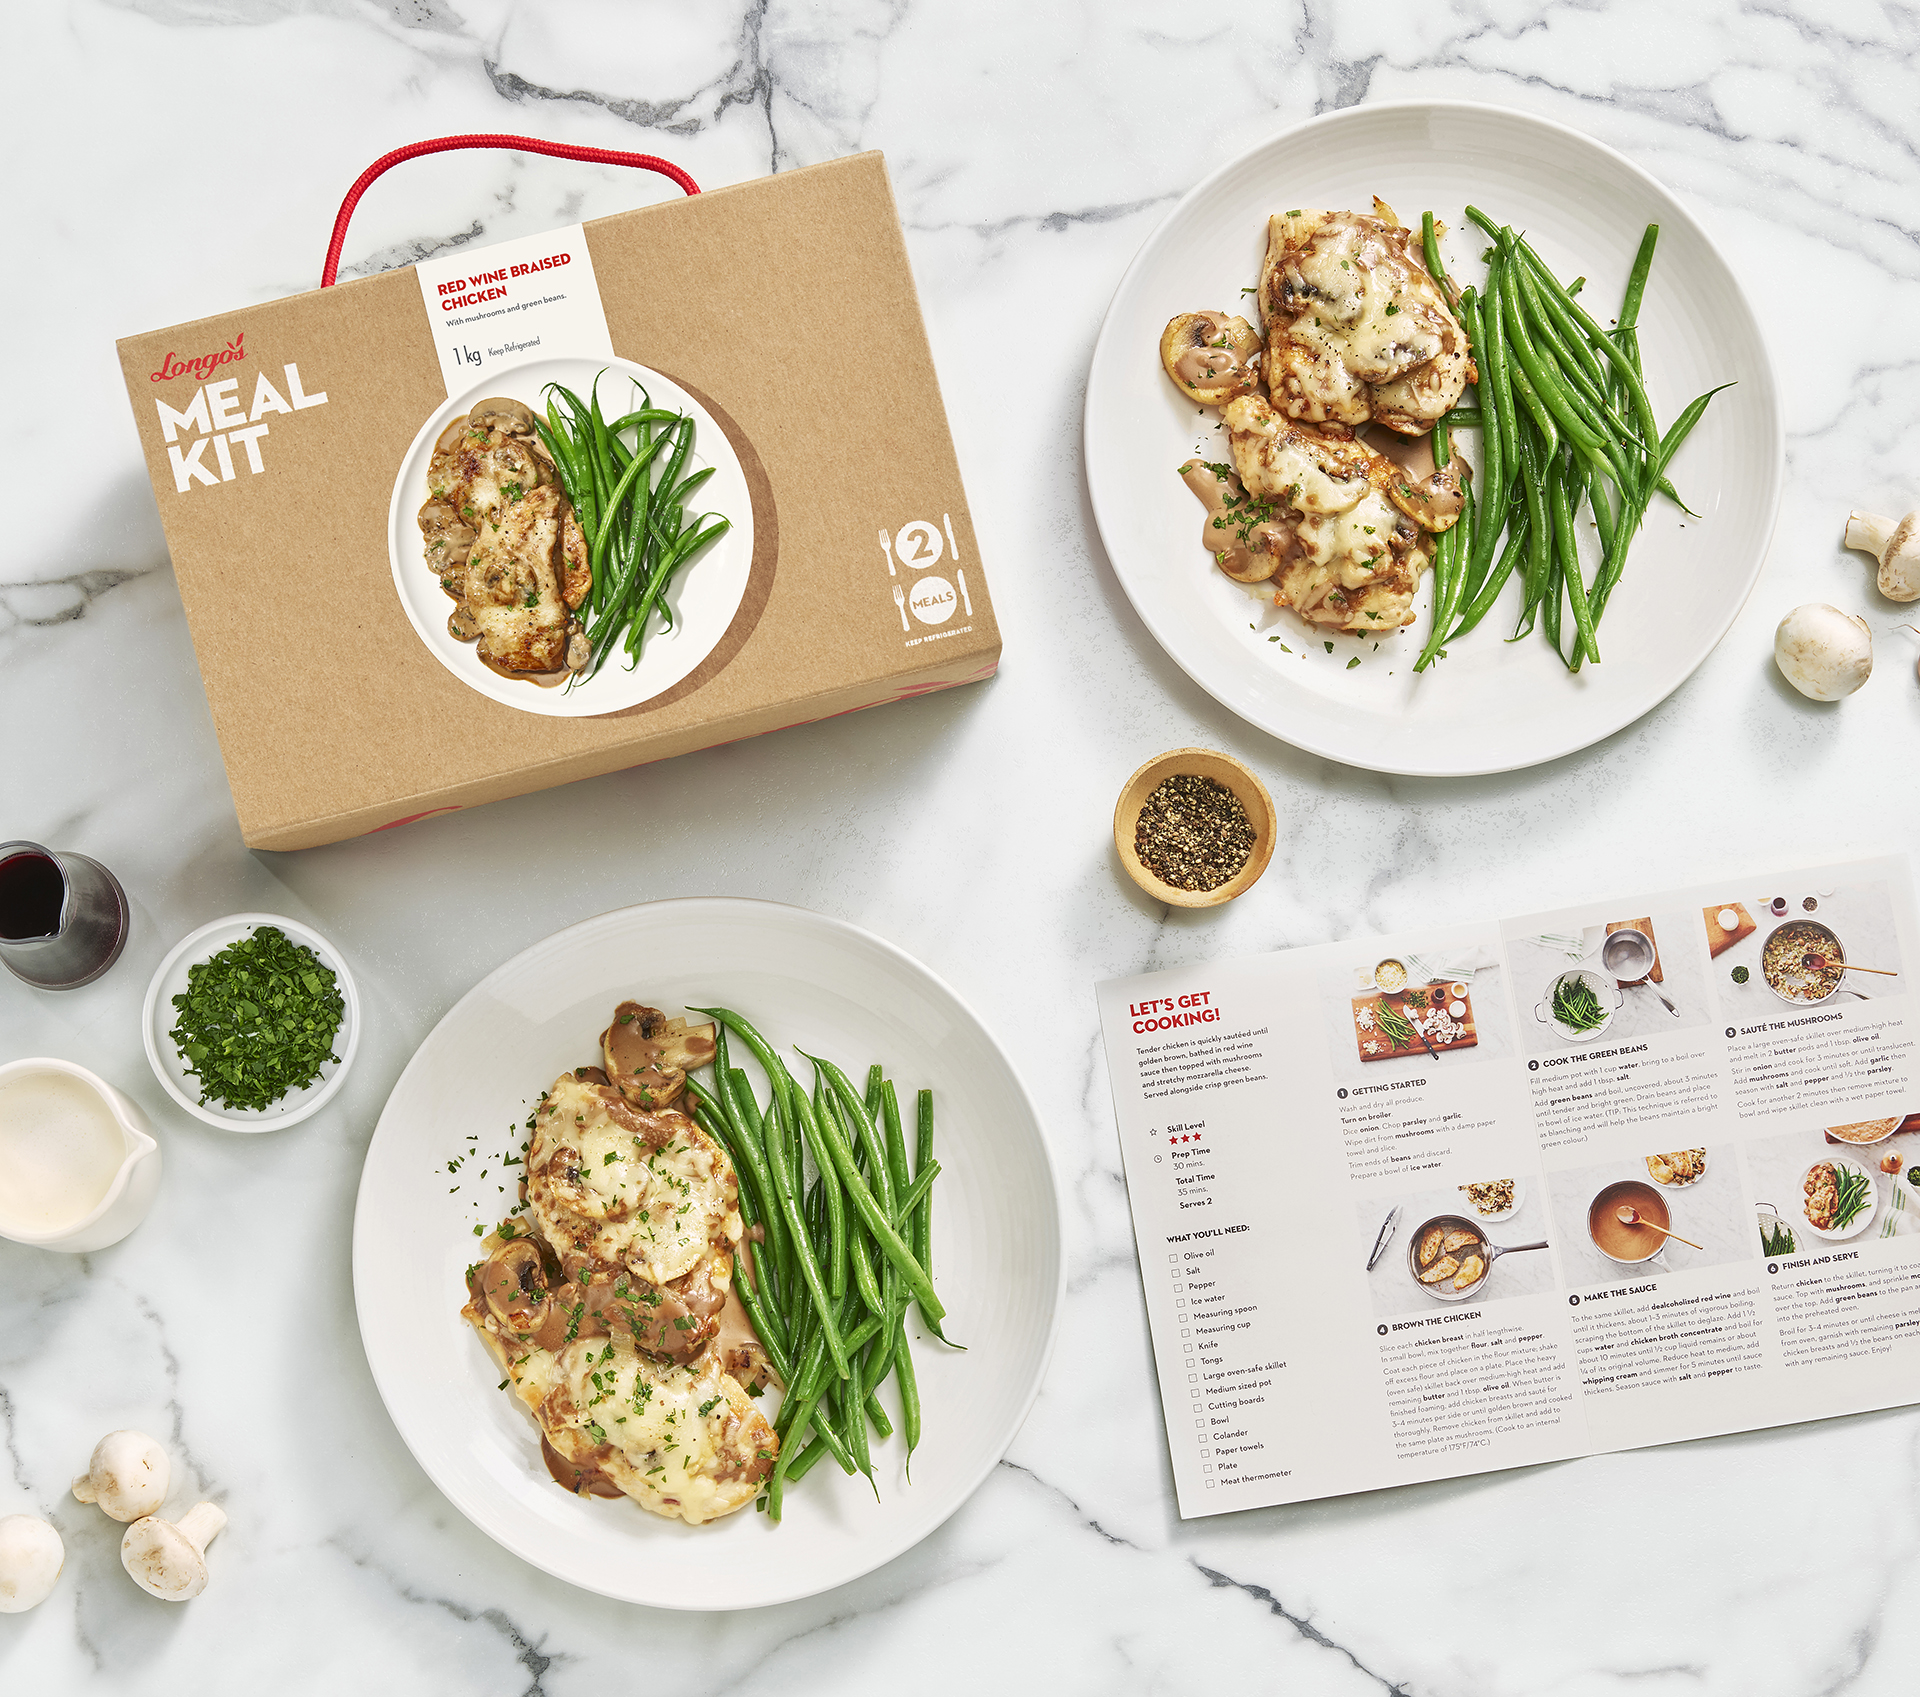 Meal Kit Box on Marble.jpg